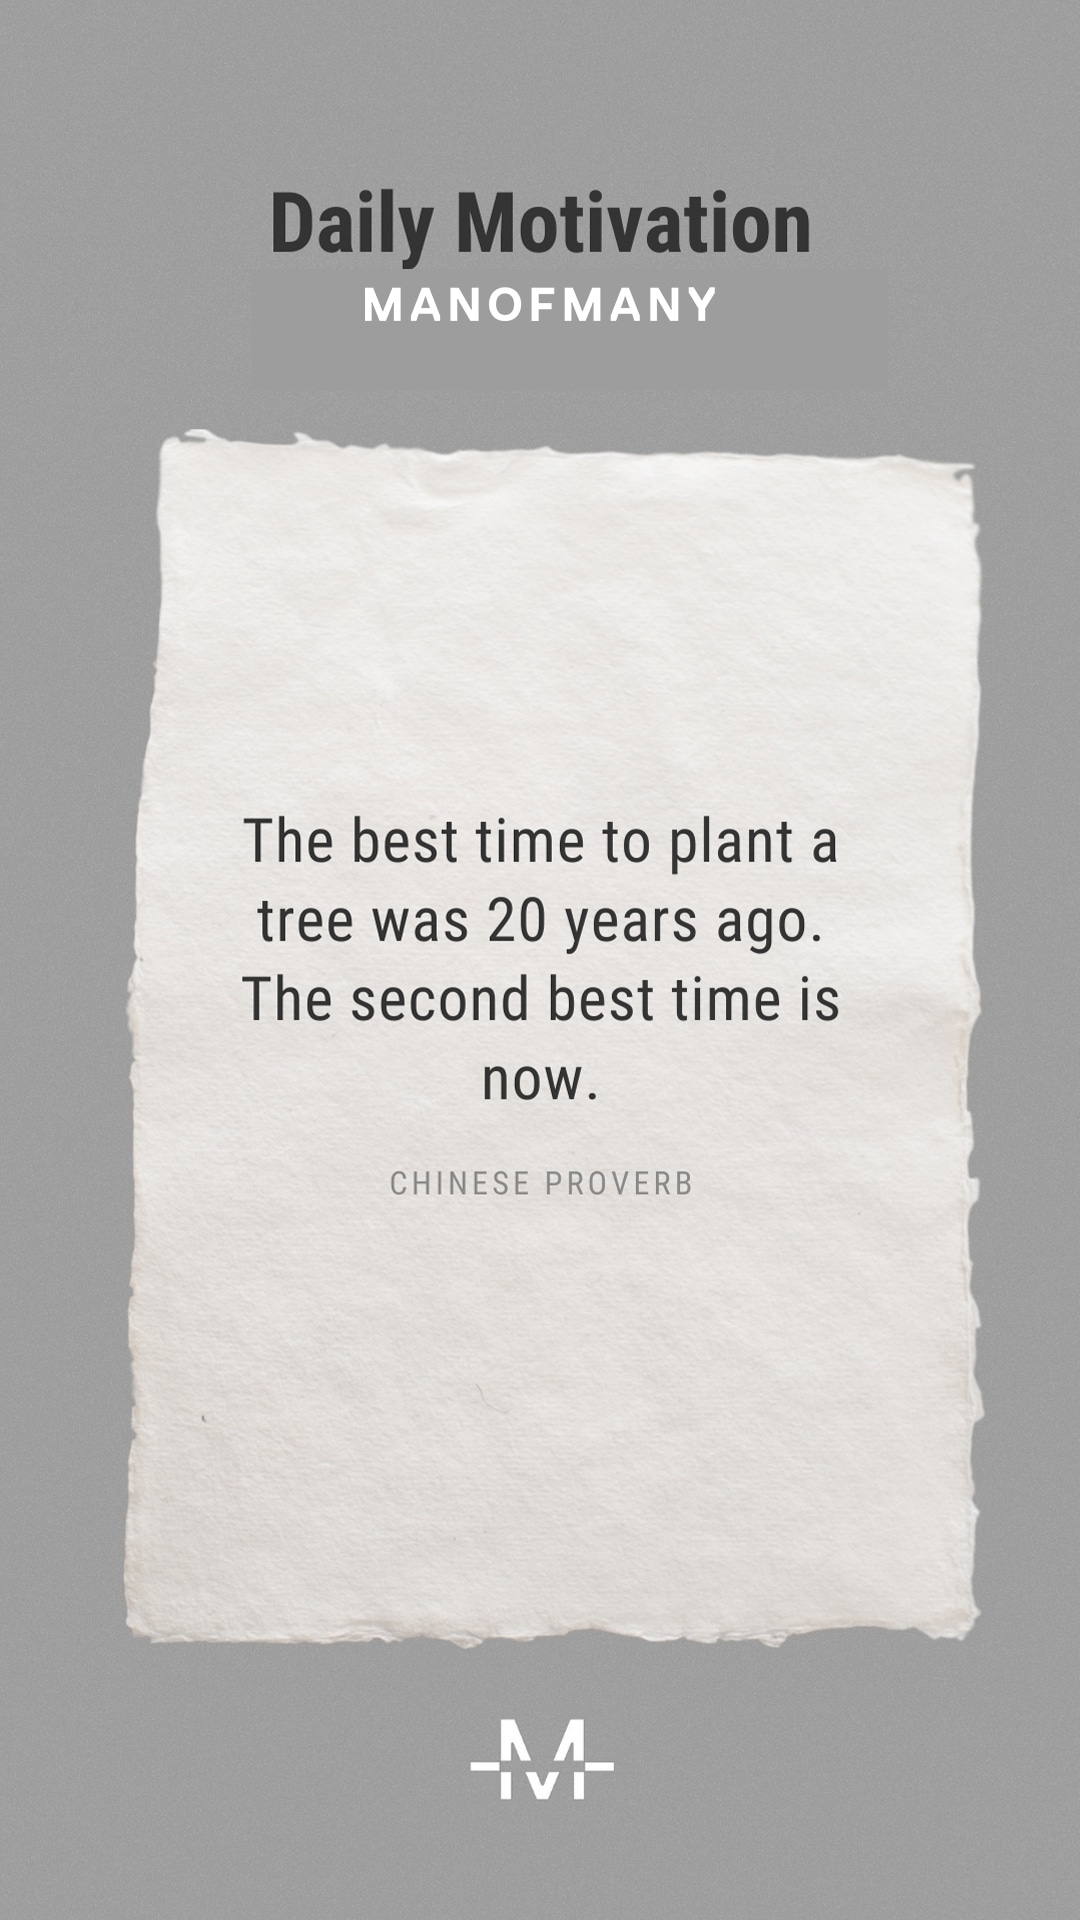 The best time to plant a tree was 20 years ago. The second best time is now. –Chinese Proverb